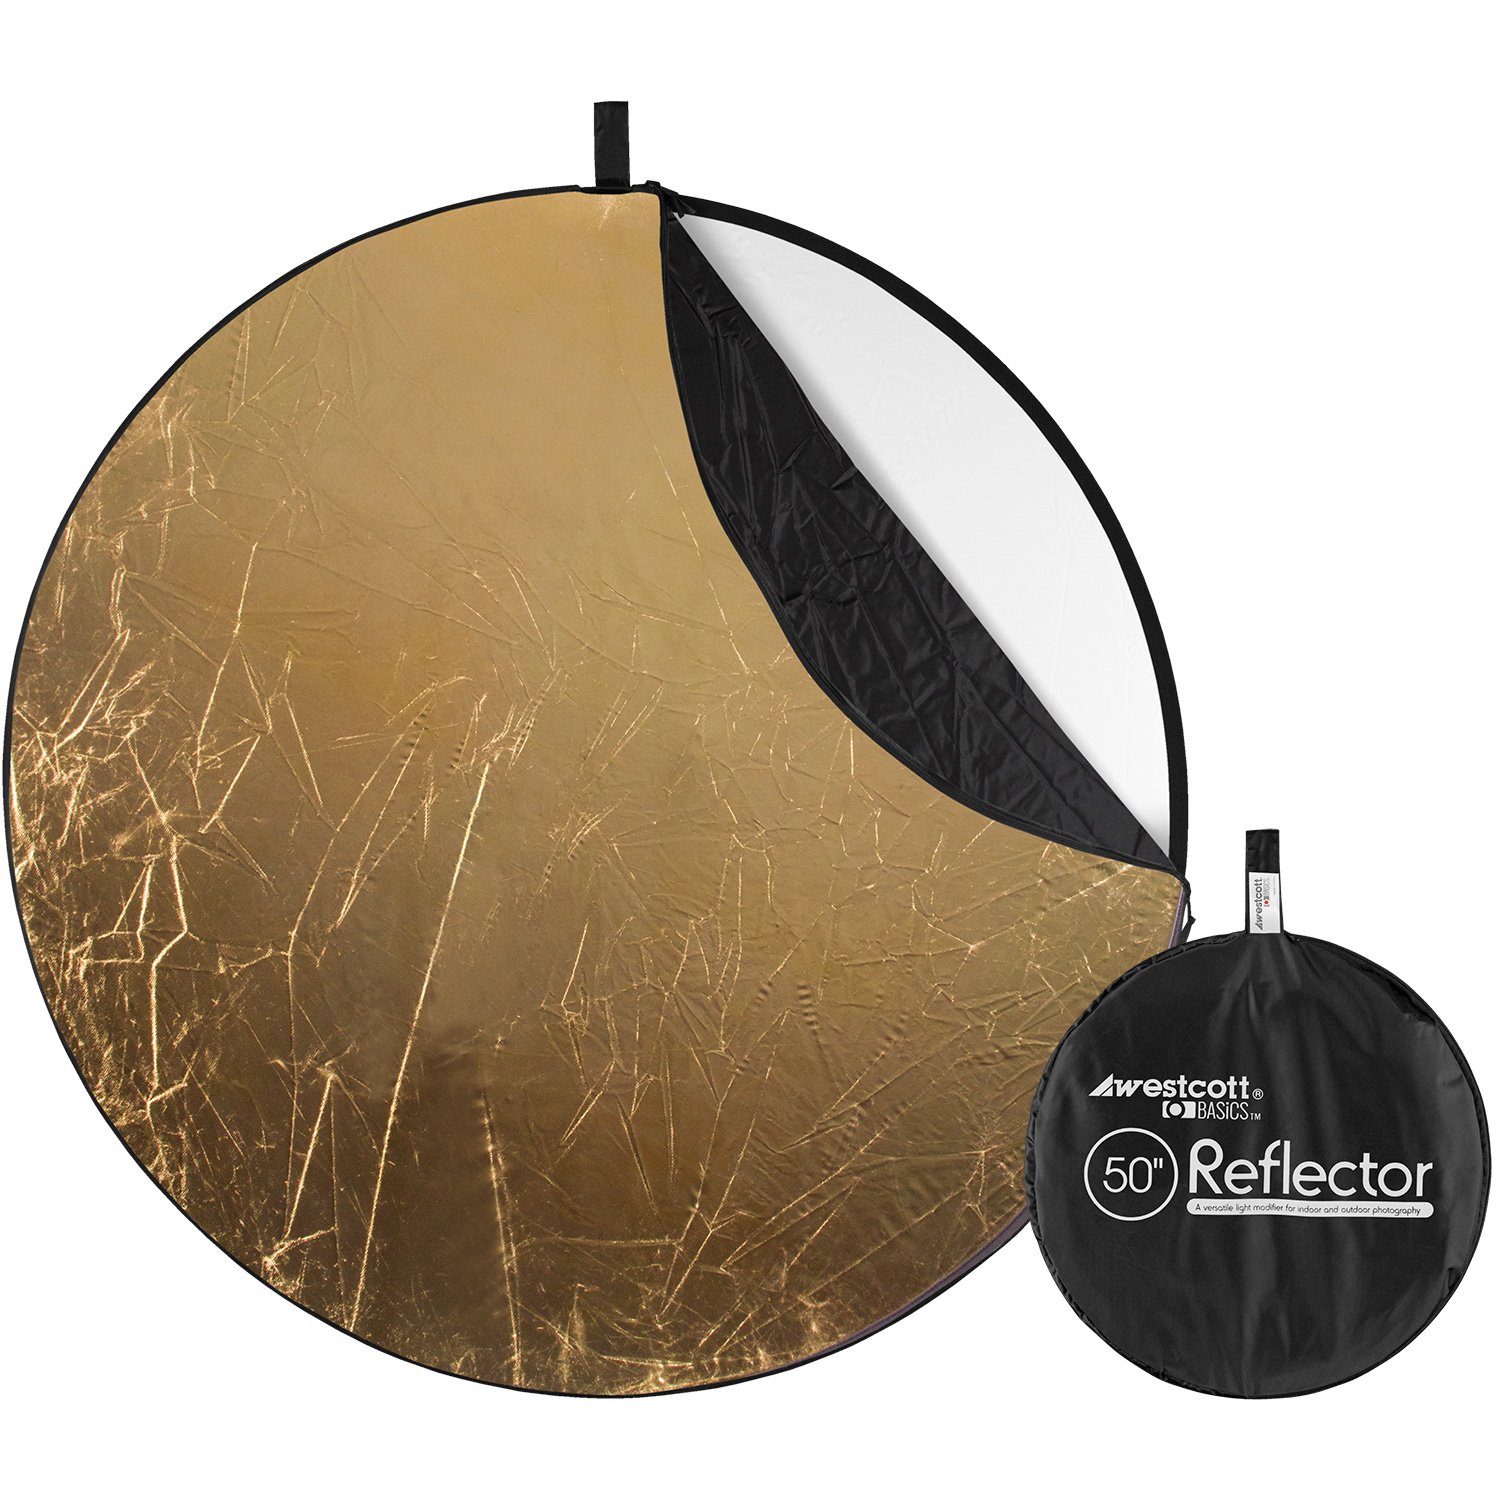 Collapsible 5-in-1 Reflector with Gold Surface (50-in.)